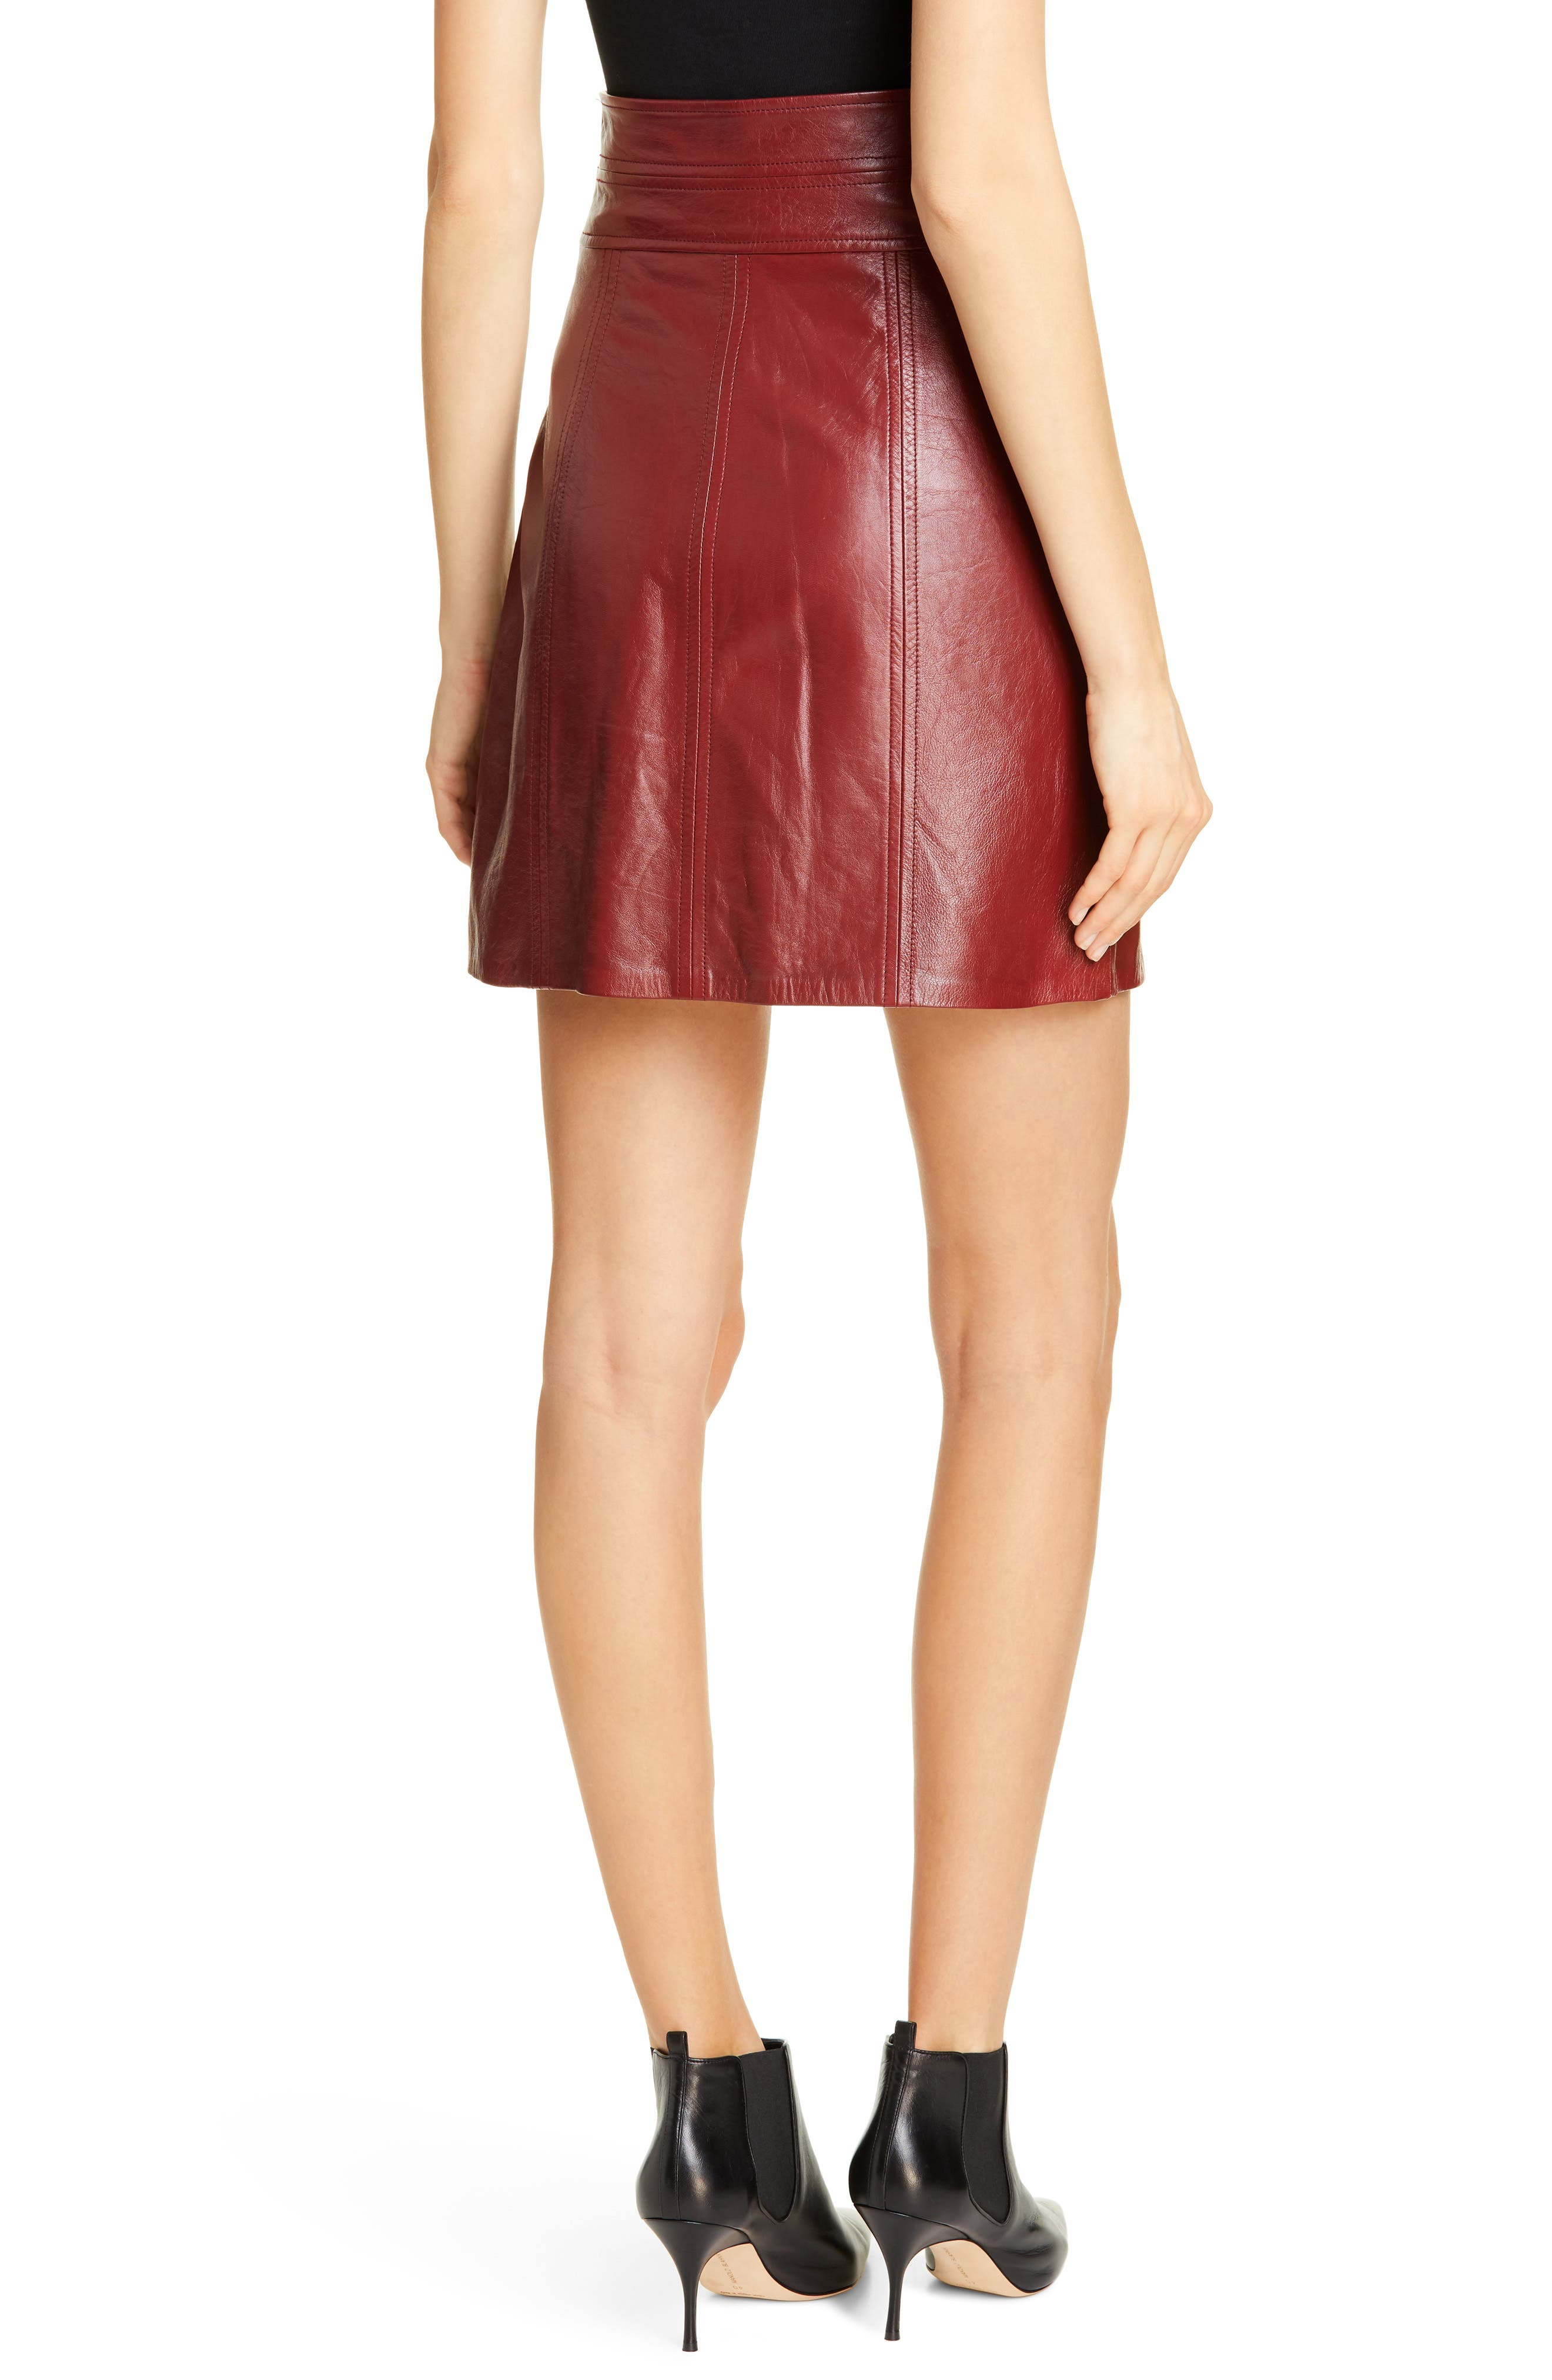 REBECCA TAYLOR, Leather Skirt, Alternate thumbnail 2, color, SPICE